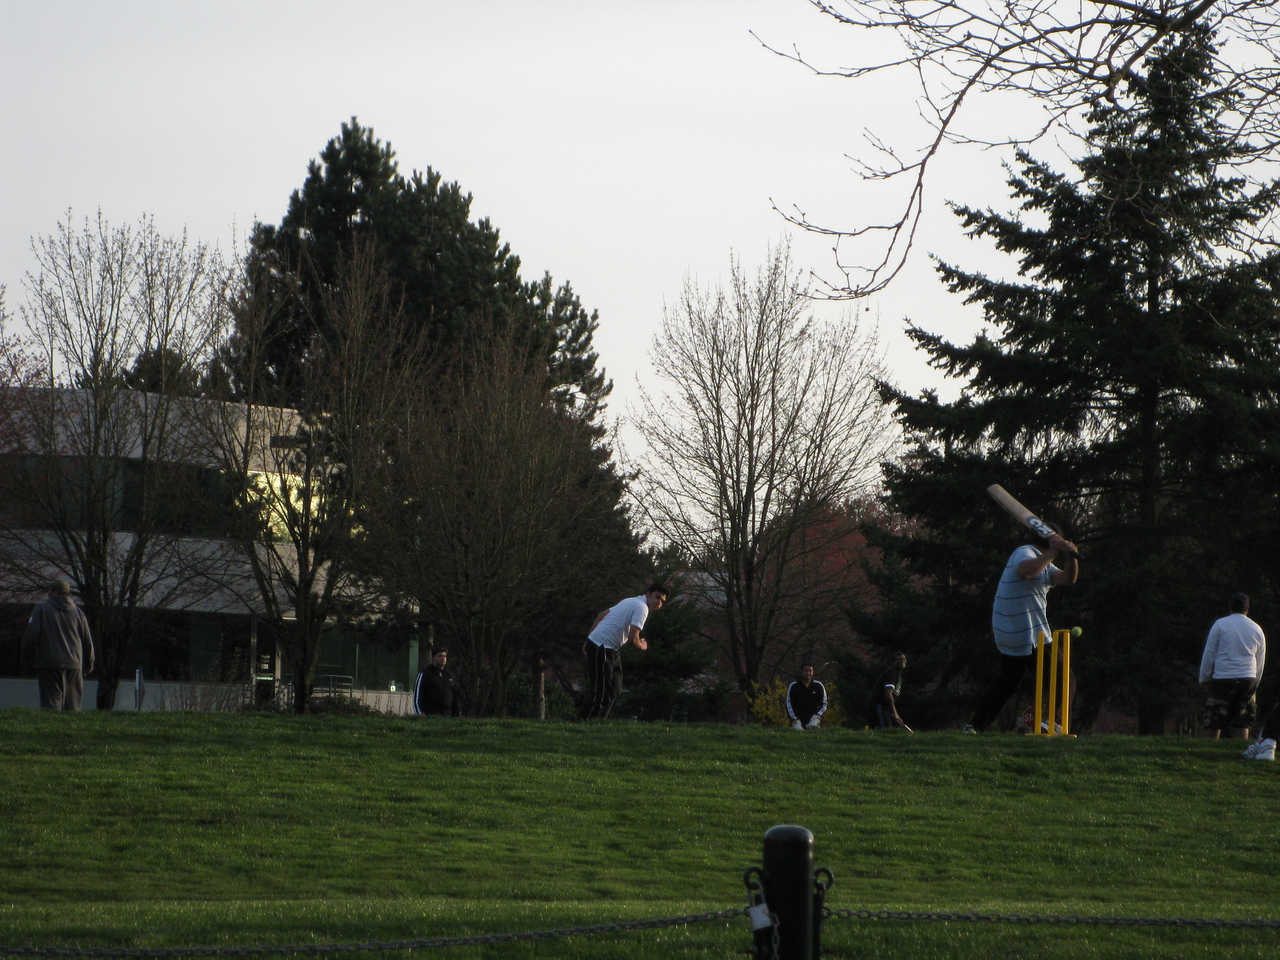 There were several cricket matches going on at the sporting fields on Main campus when I left tonight.